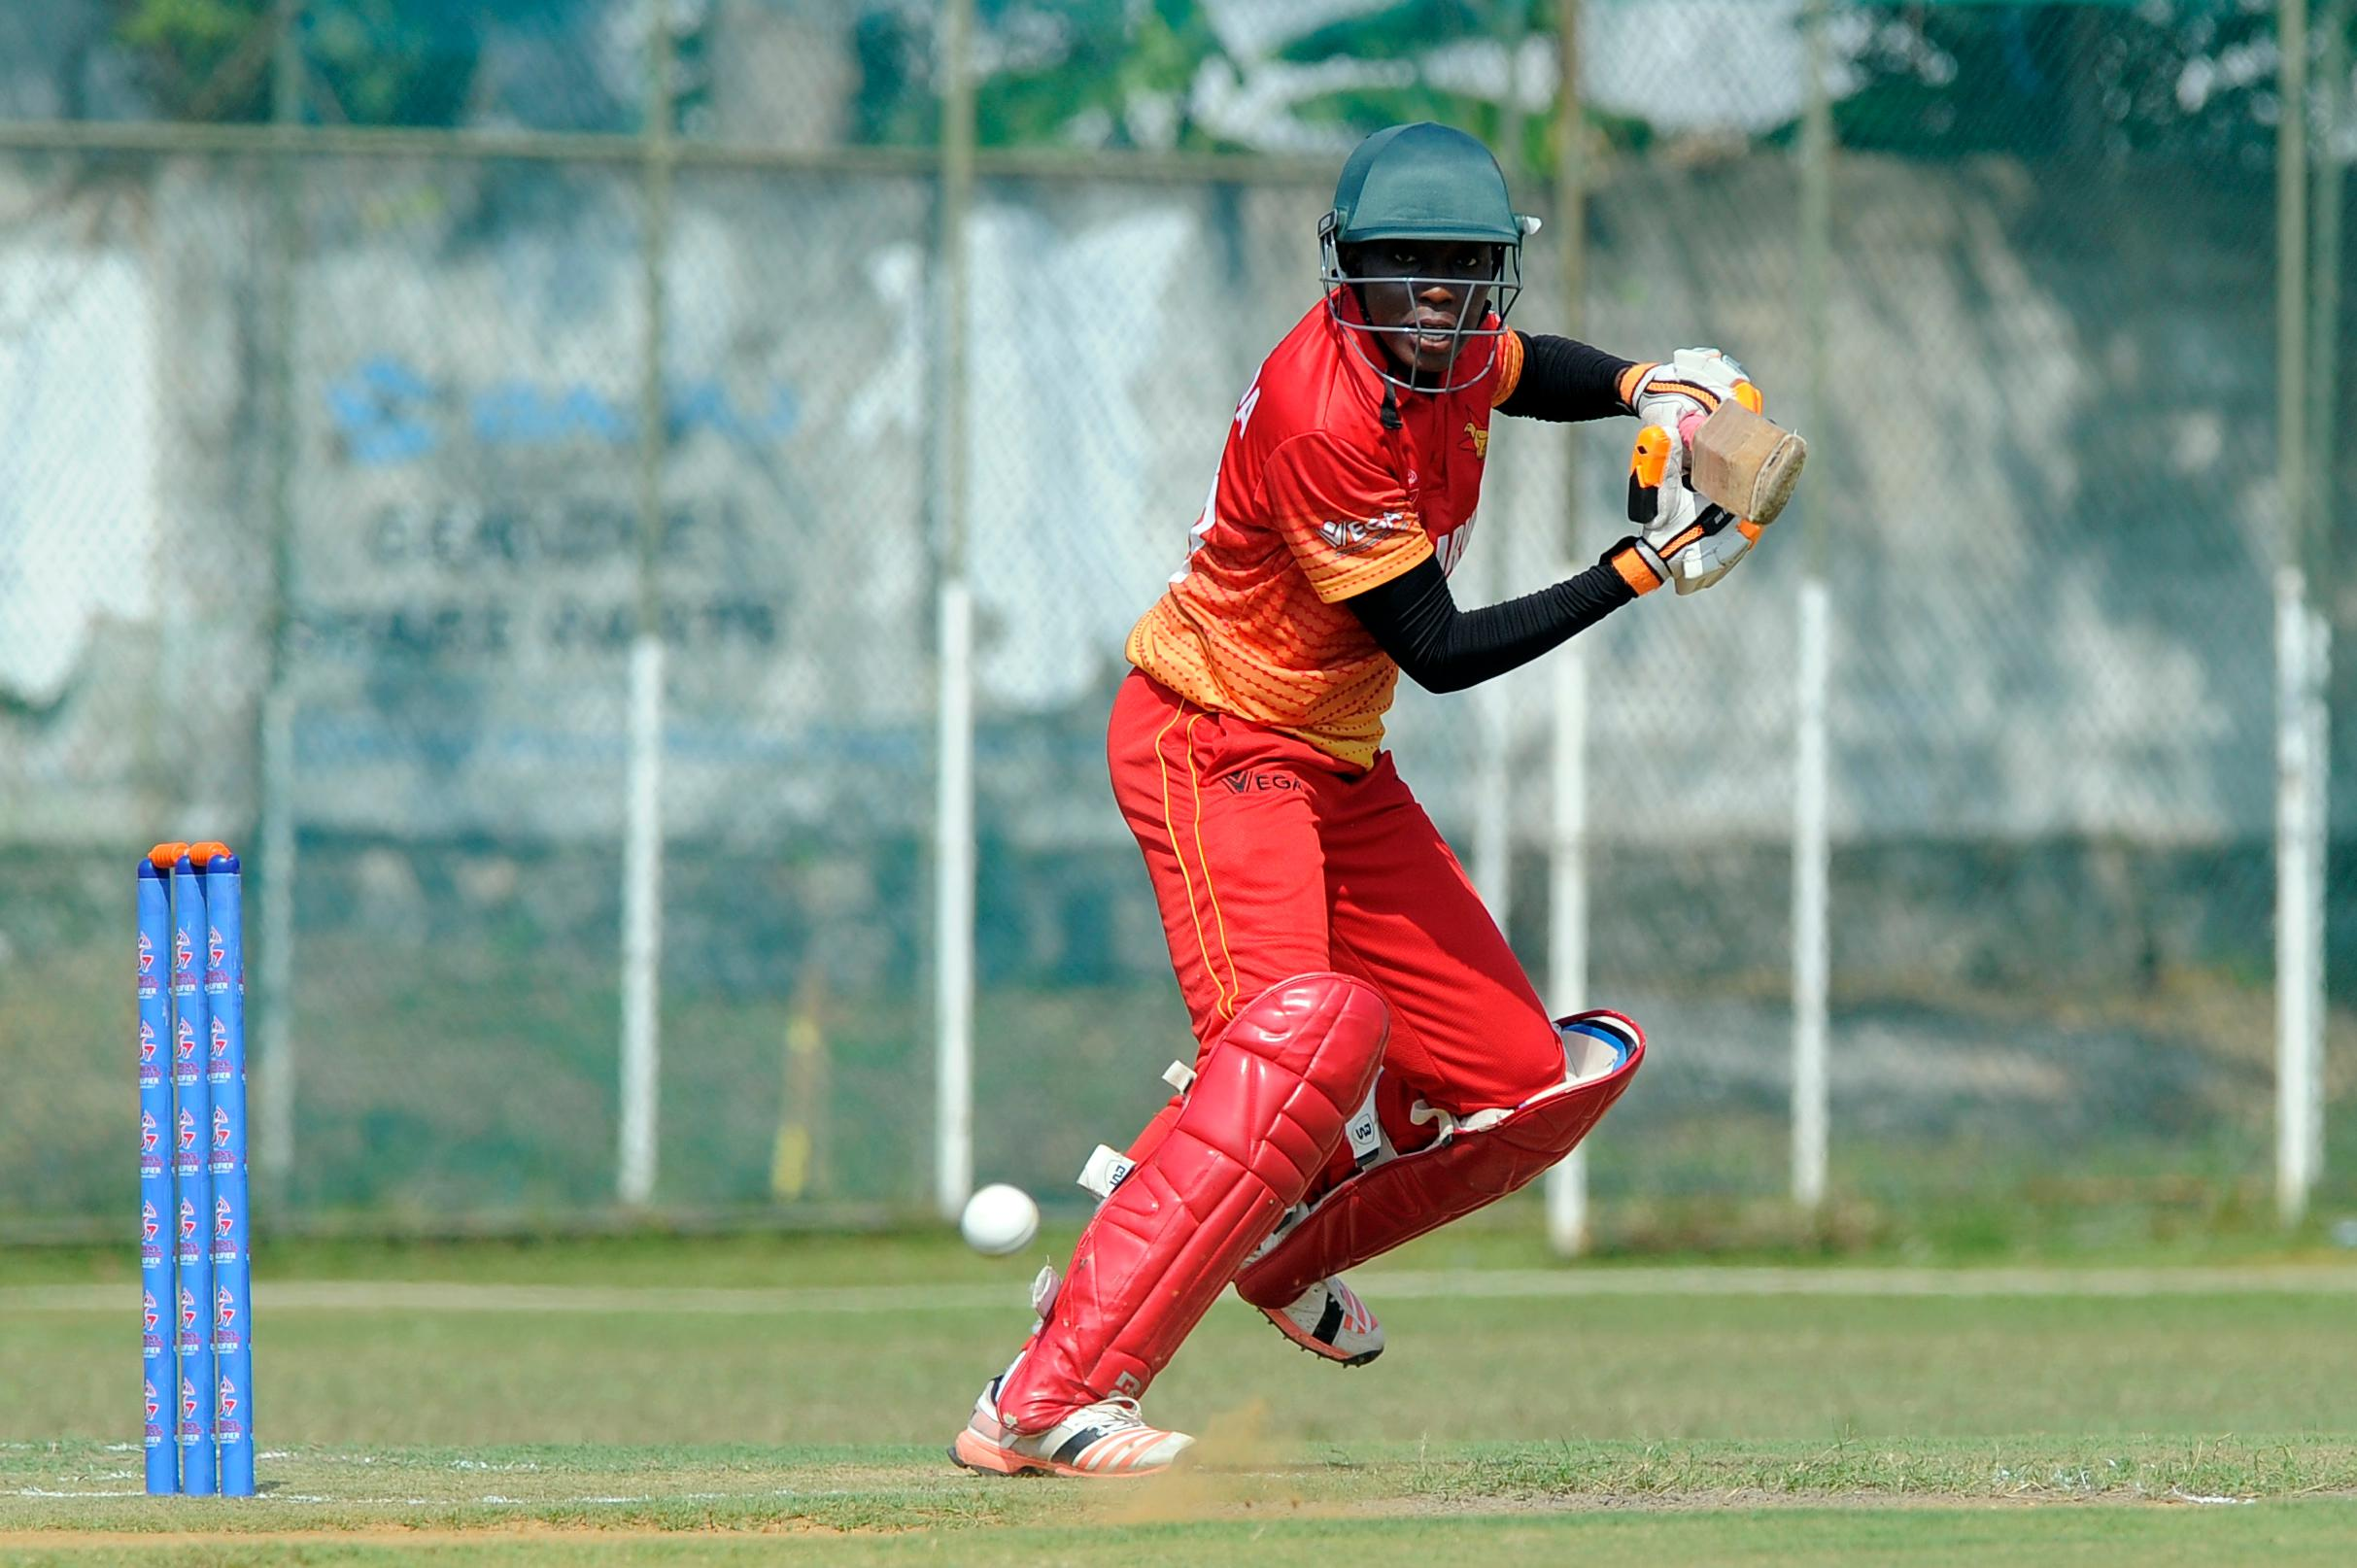 Icc Women S World Cup Qualifier Day 4 Top Moments